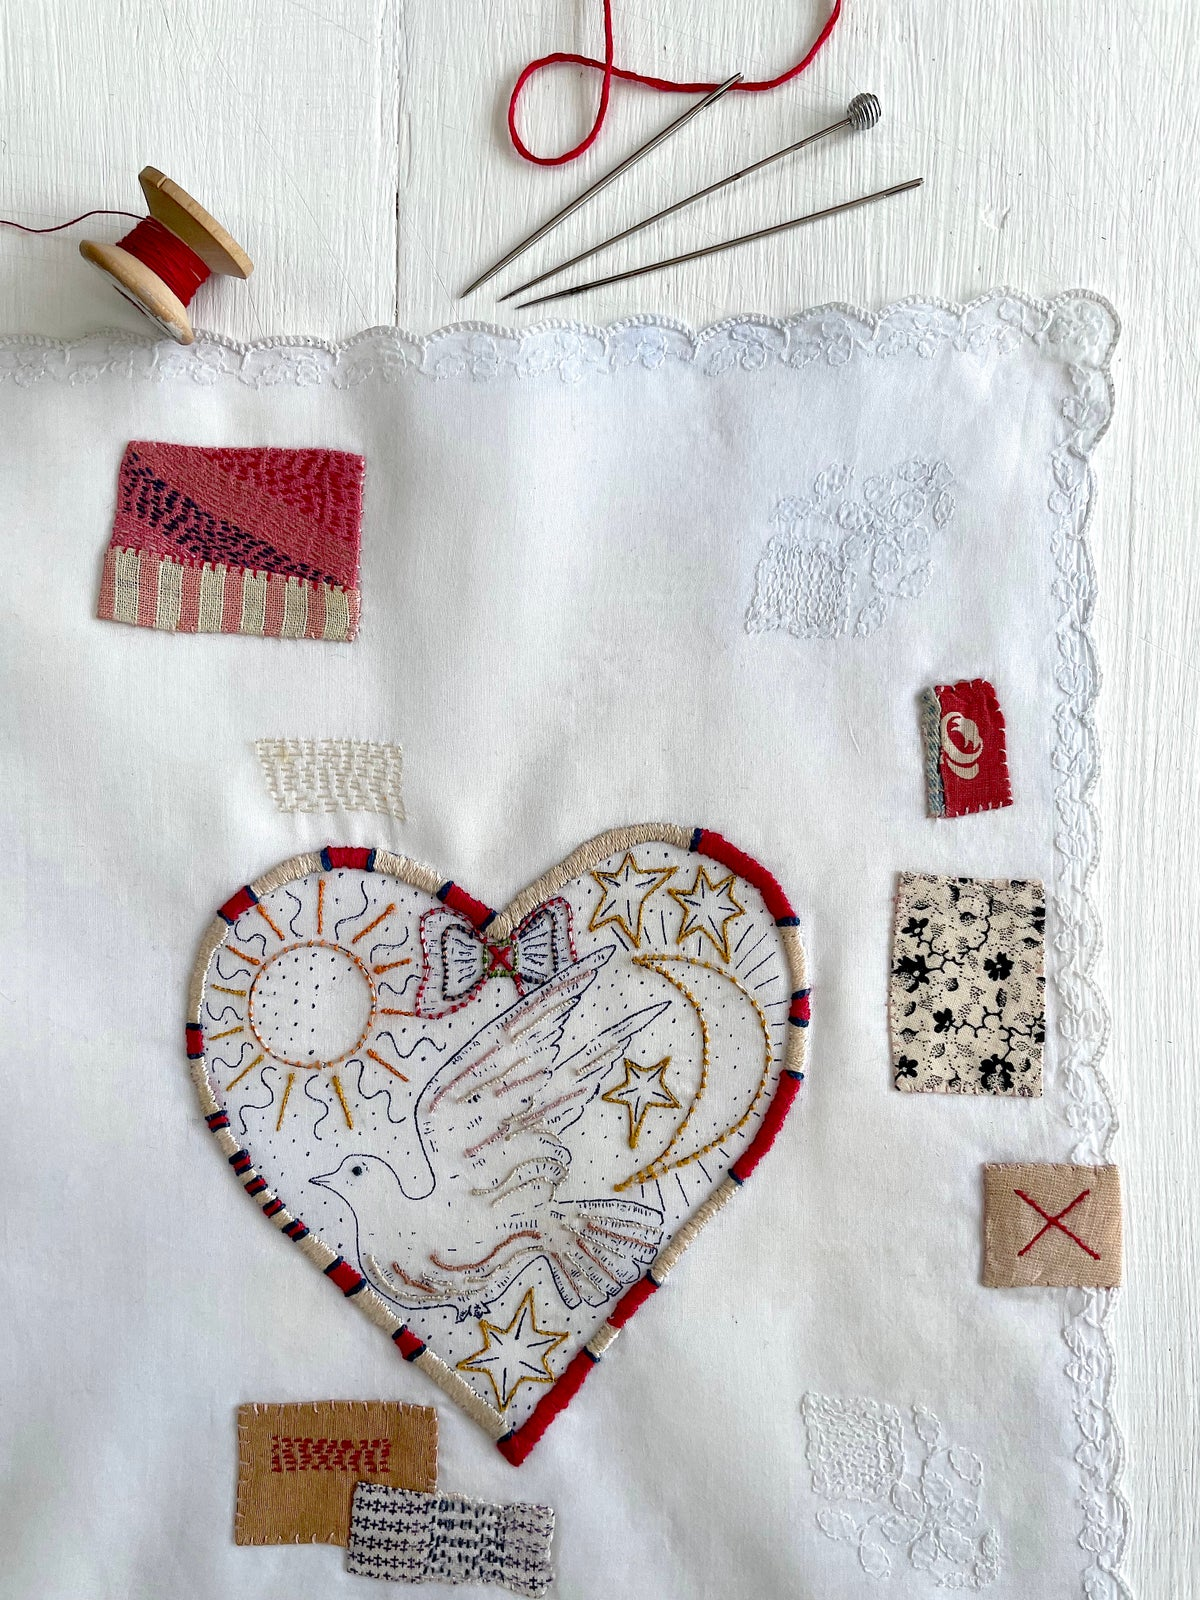 Image of 'Heart & dove' souvenir handkerchief